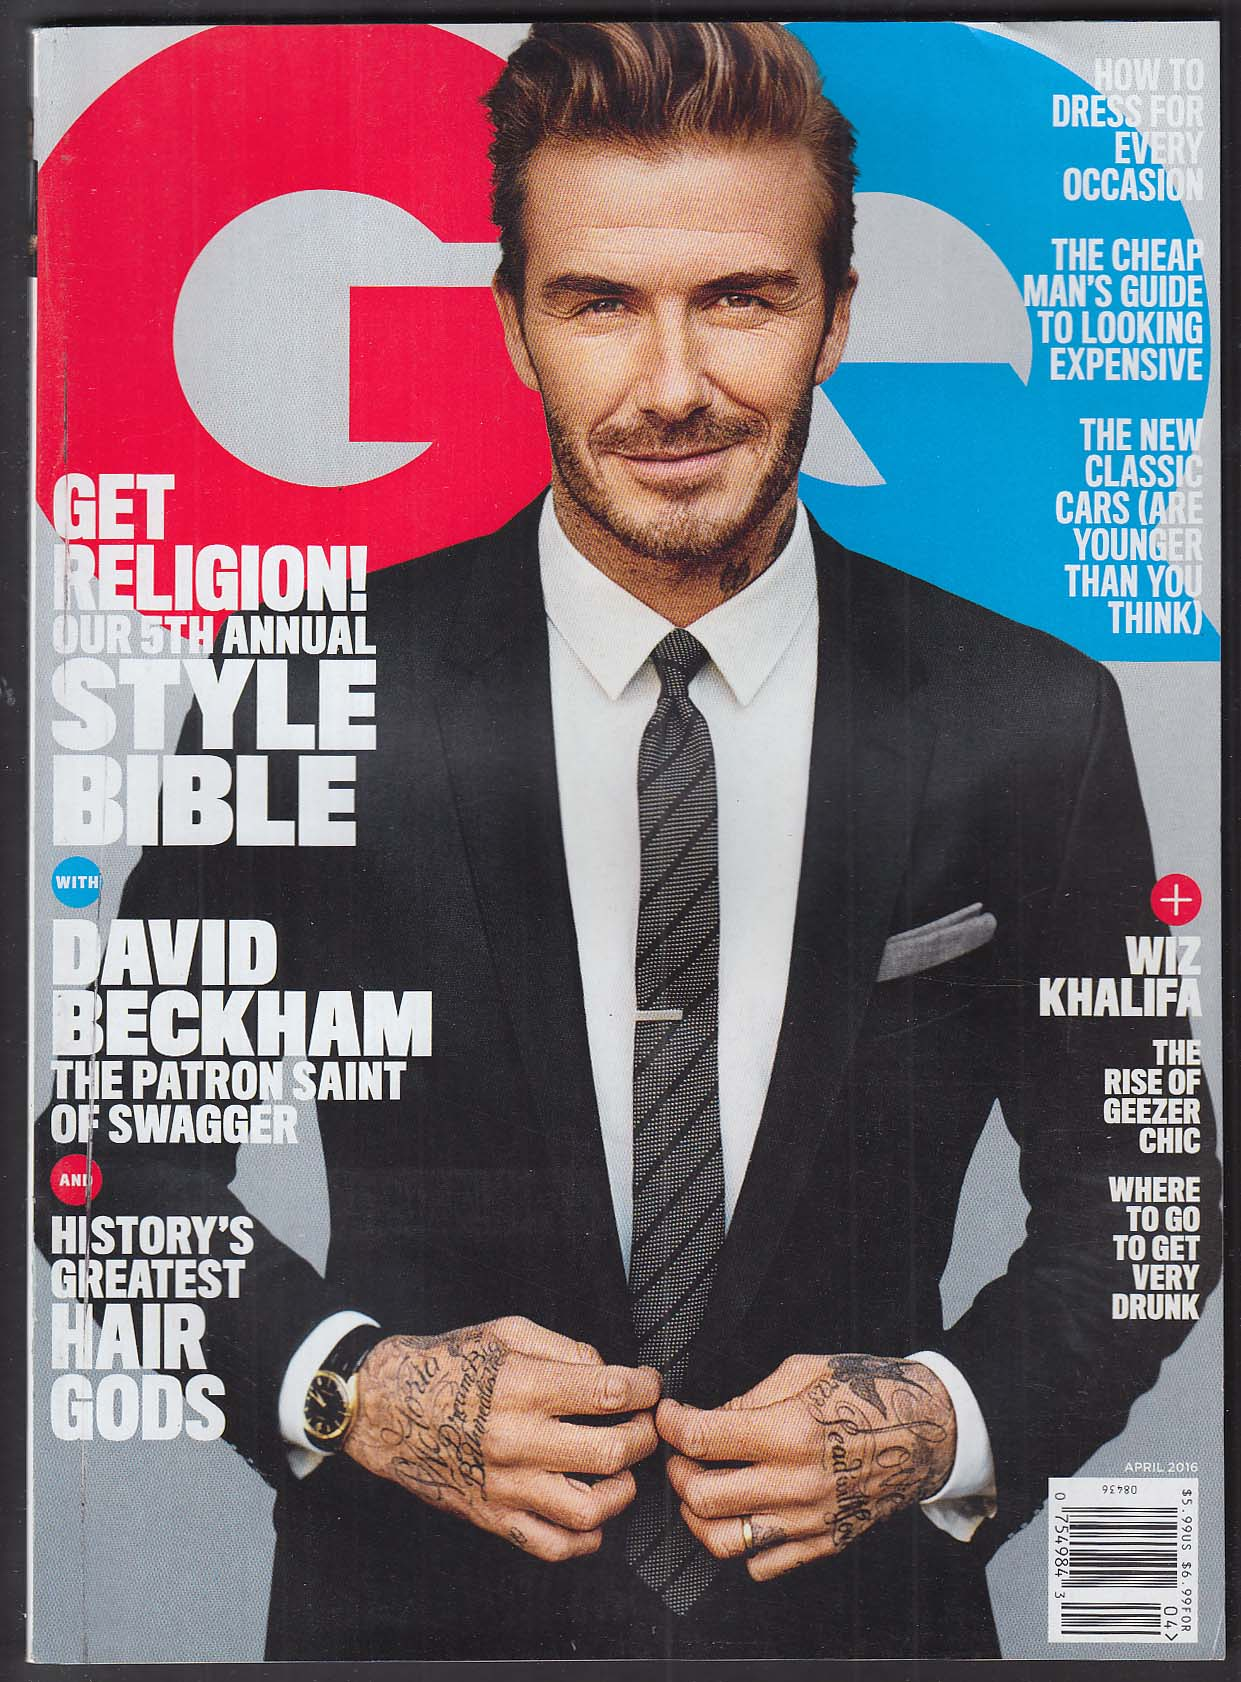 GQ David Beckham Wiz Khalifa Greg Lauren + 4 2016